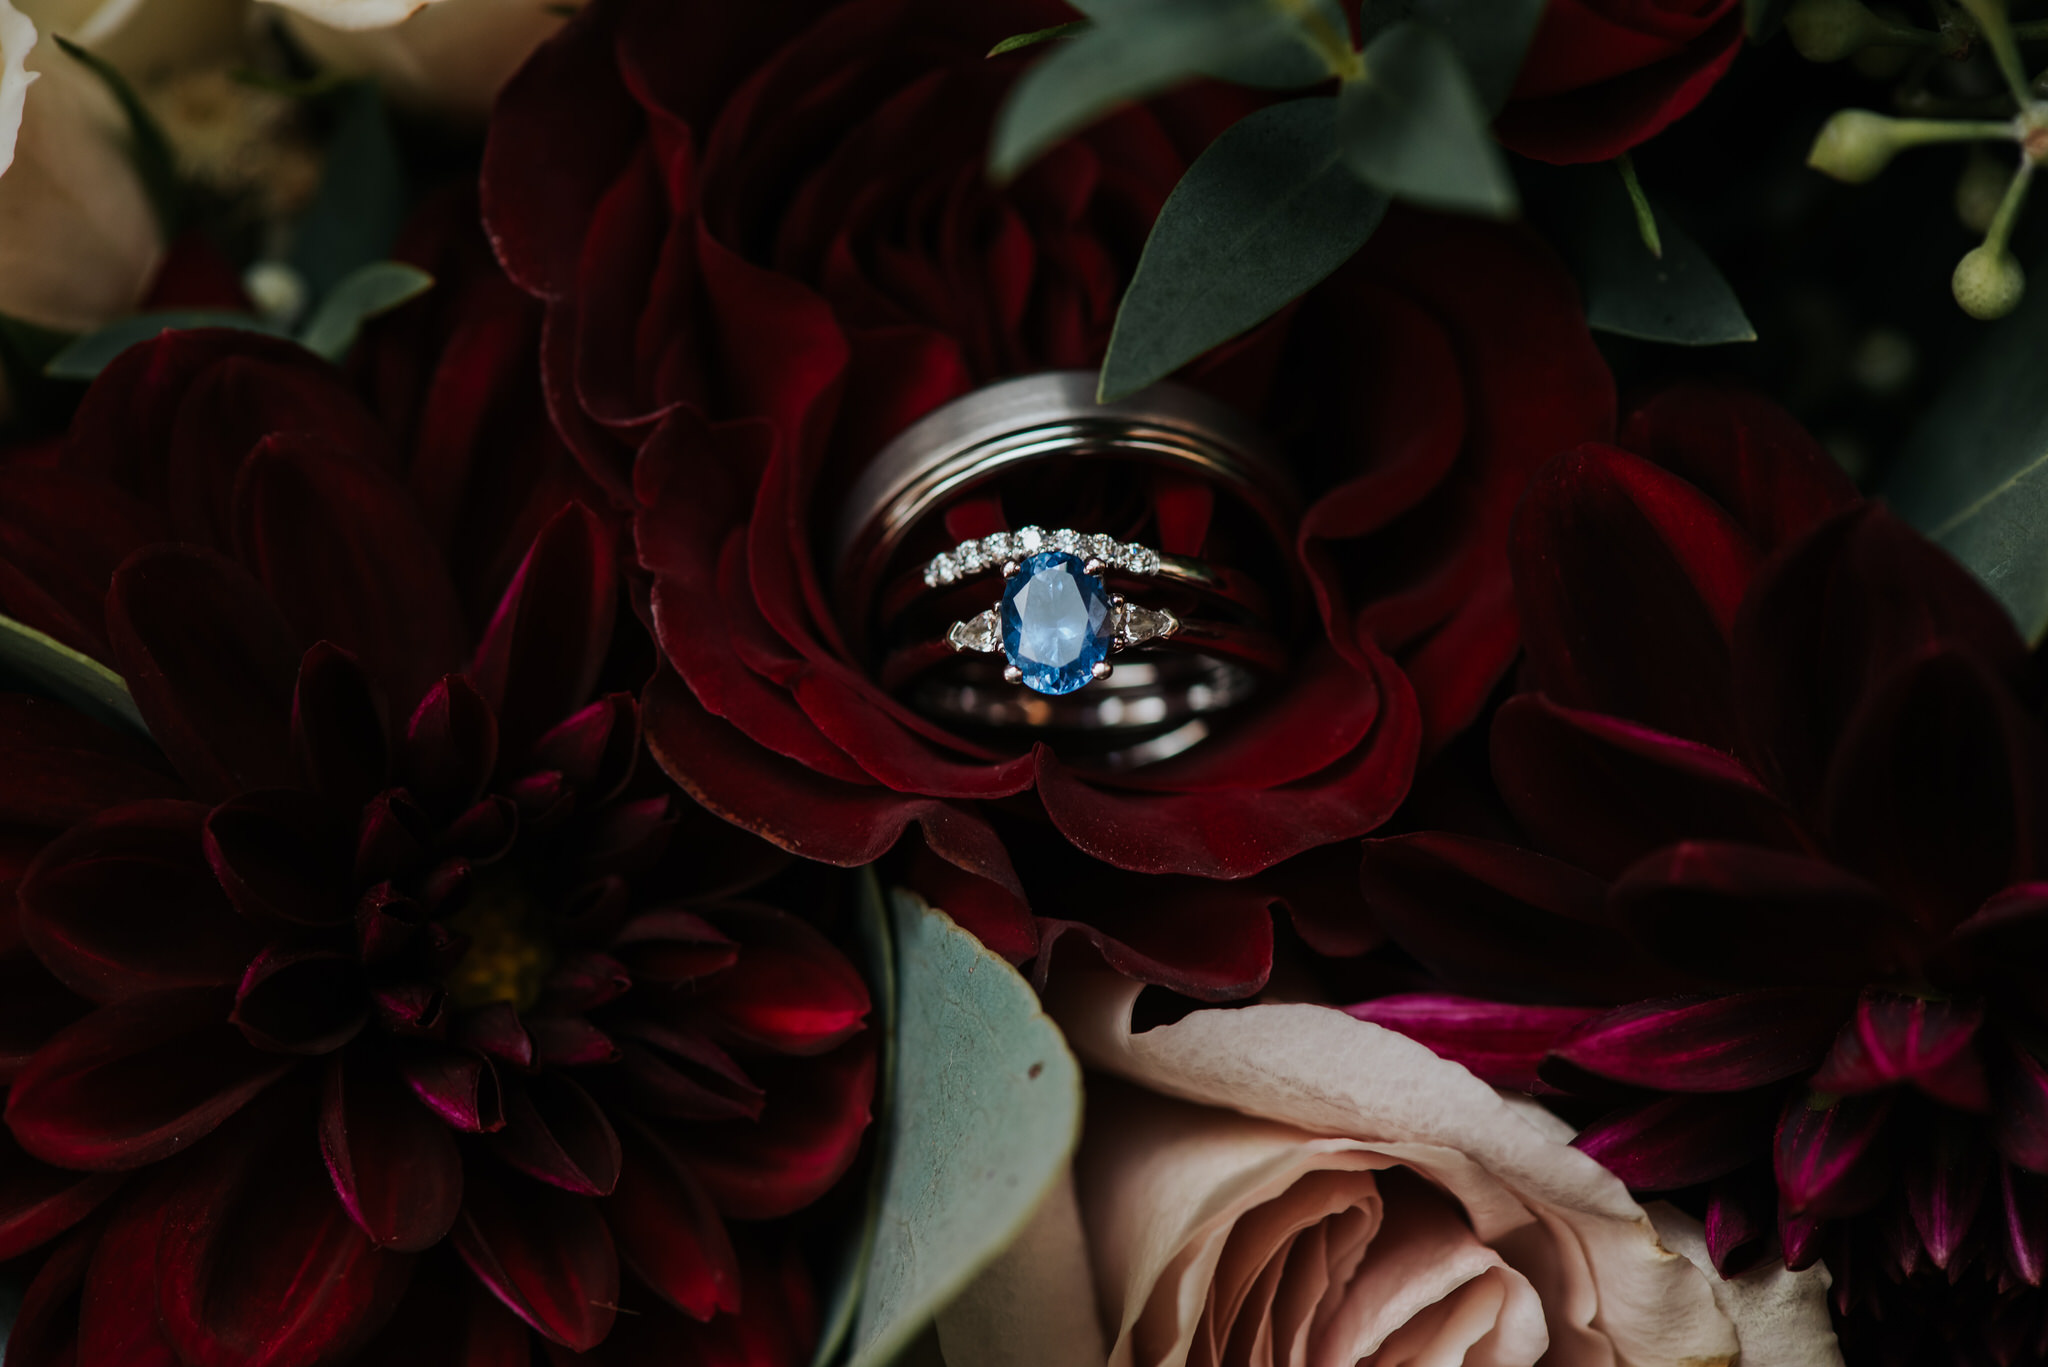 Waterstone Estate & Farms Wedding - Blue Wedding Ring in Roses